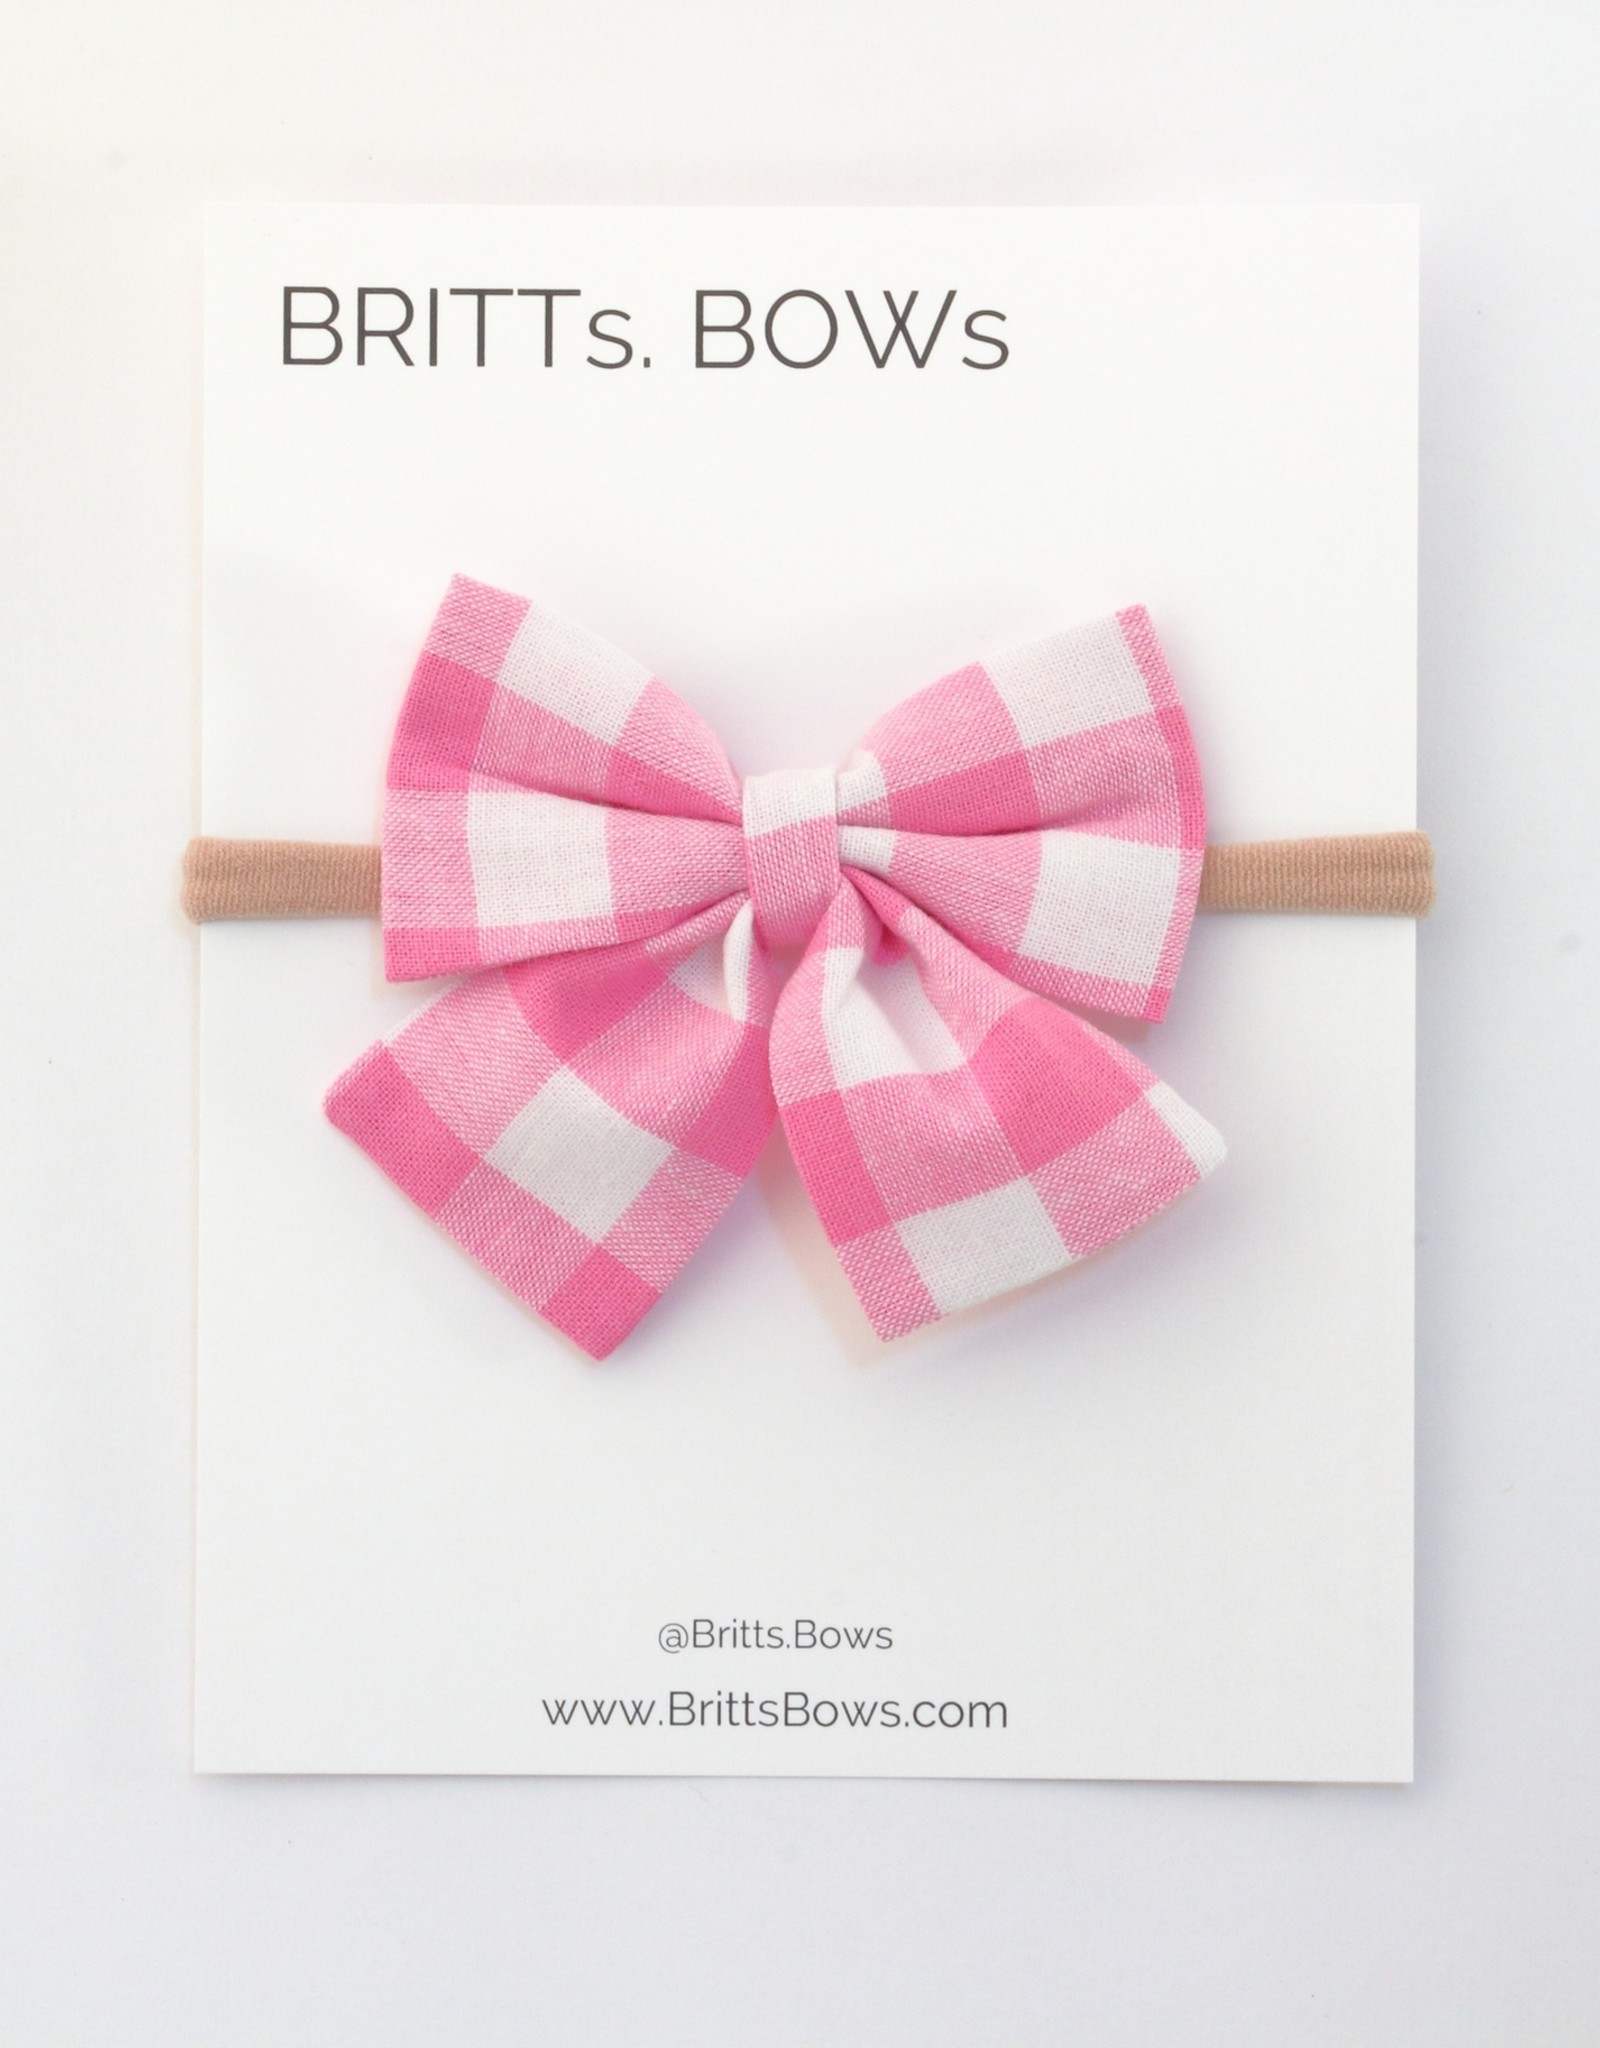 Britts bows Pink and White Gingham Headband